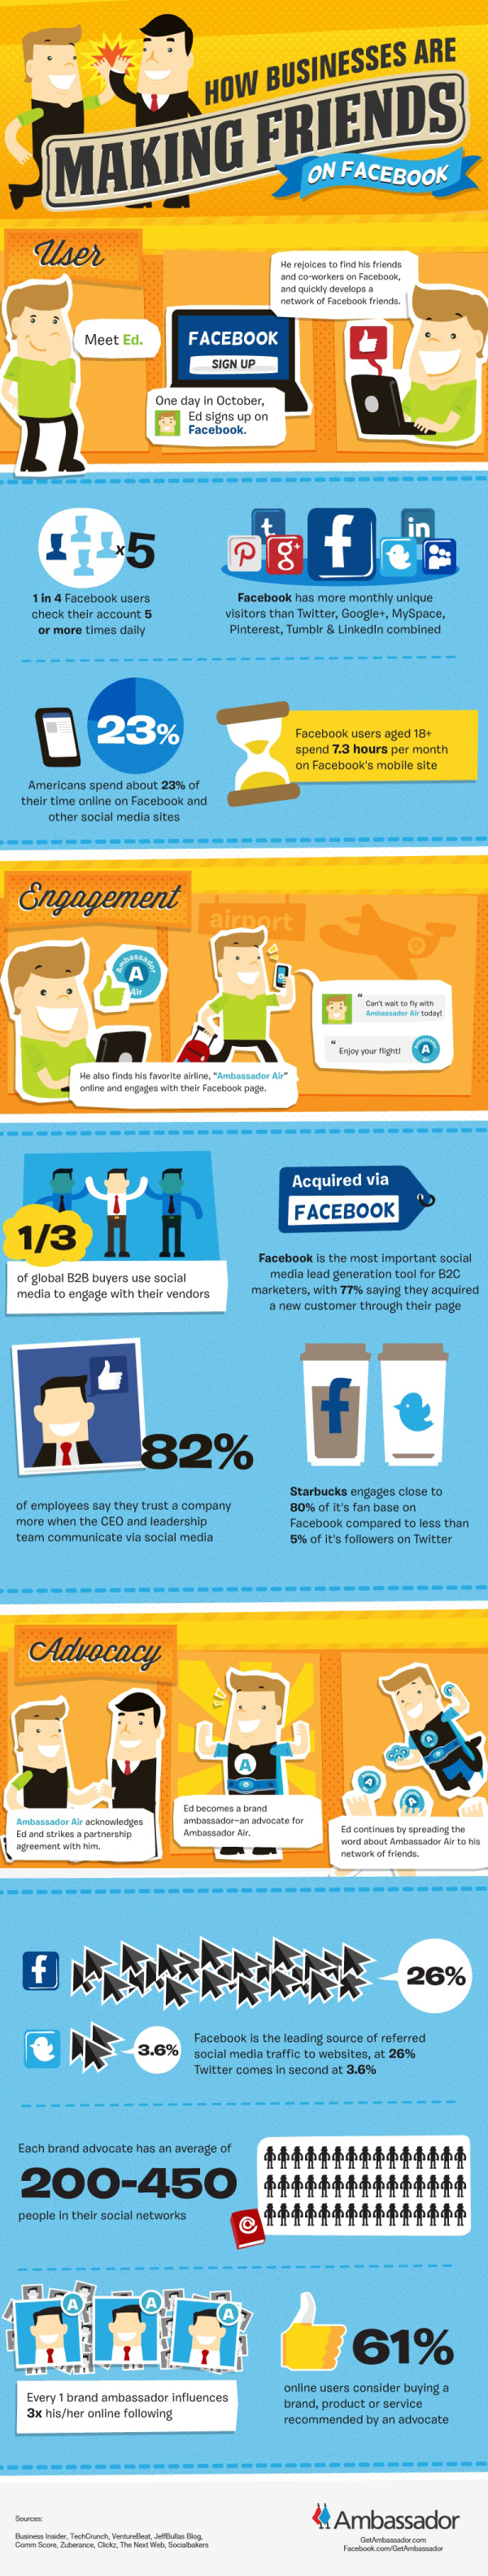 Word of Mouth Marketing on Facebook-resized-600